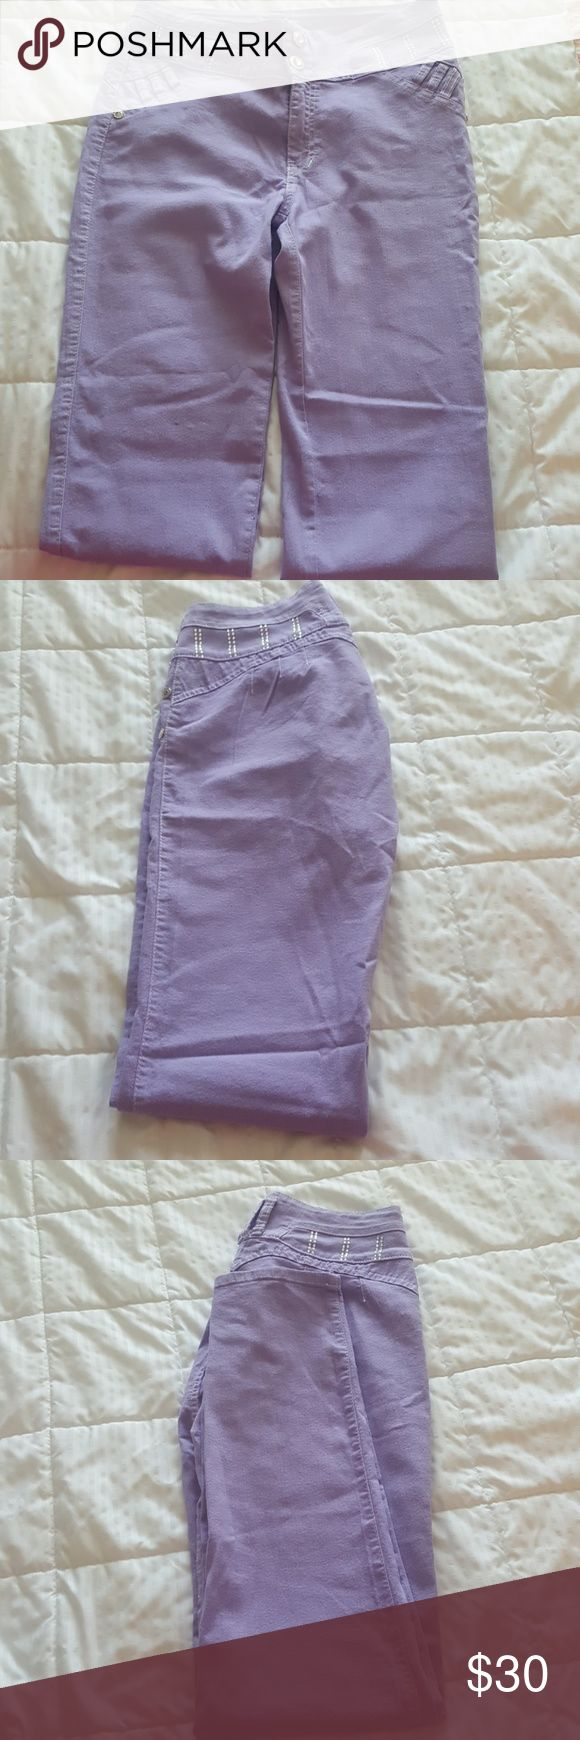 pantalones colombianos levantas colas very straingh. I aks for $30 because I never used this pants. verox Pants Skinny